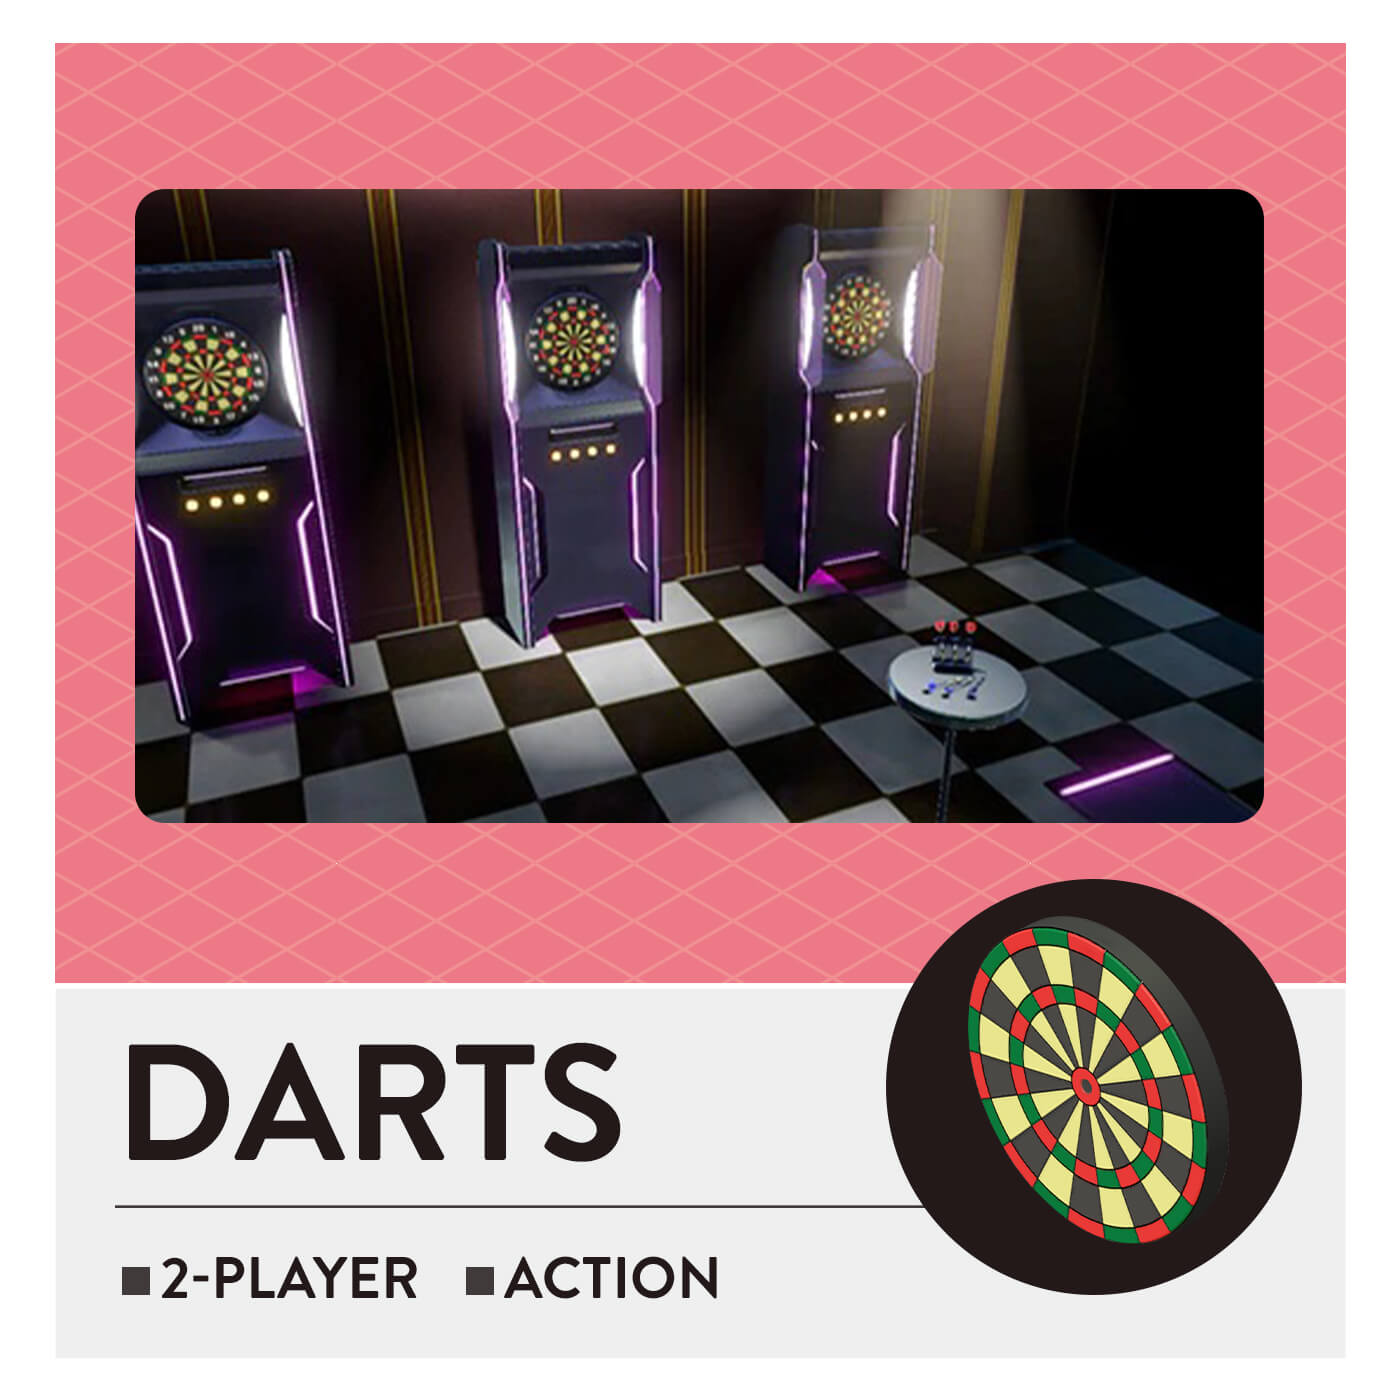 51 Worldwide Games - Darts